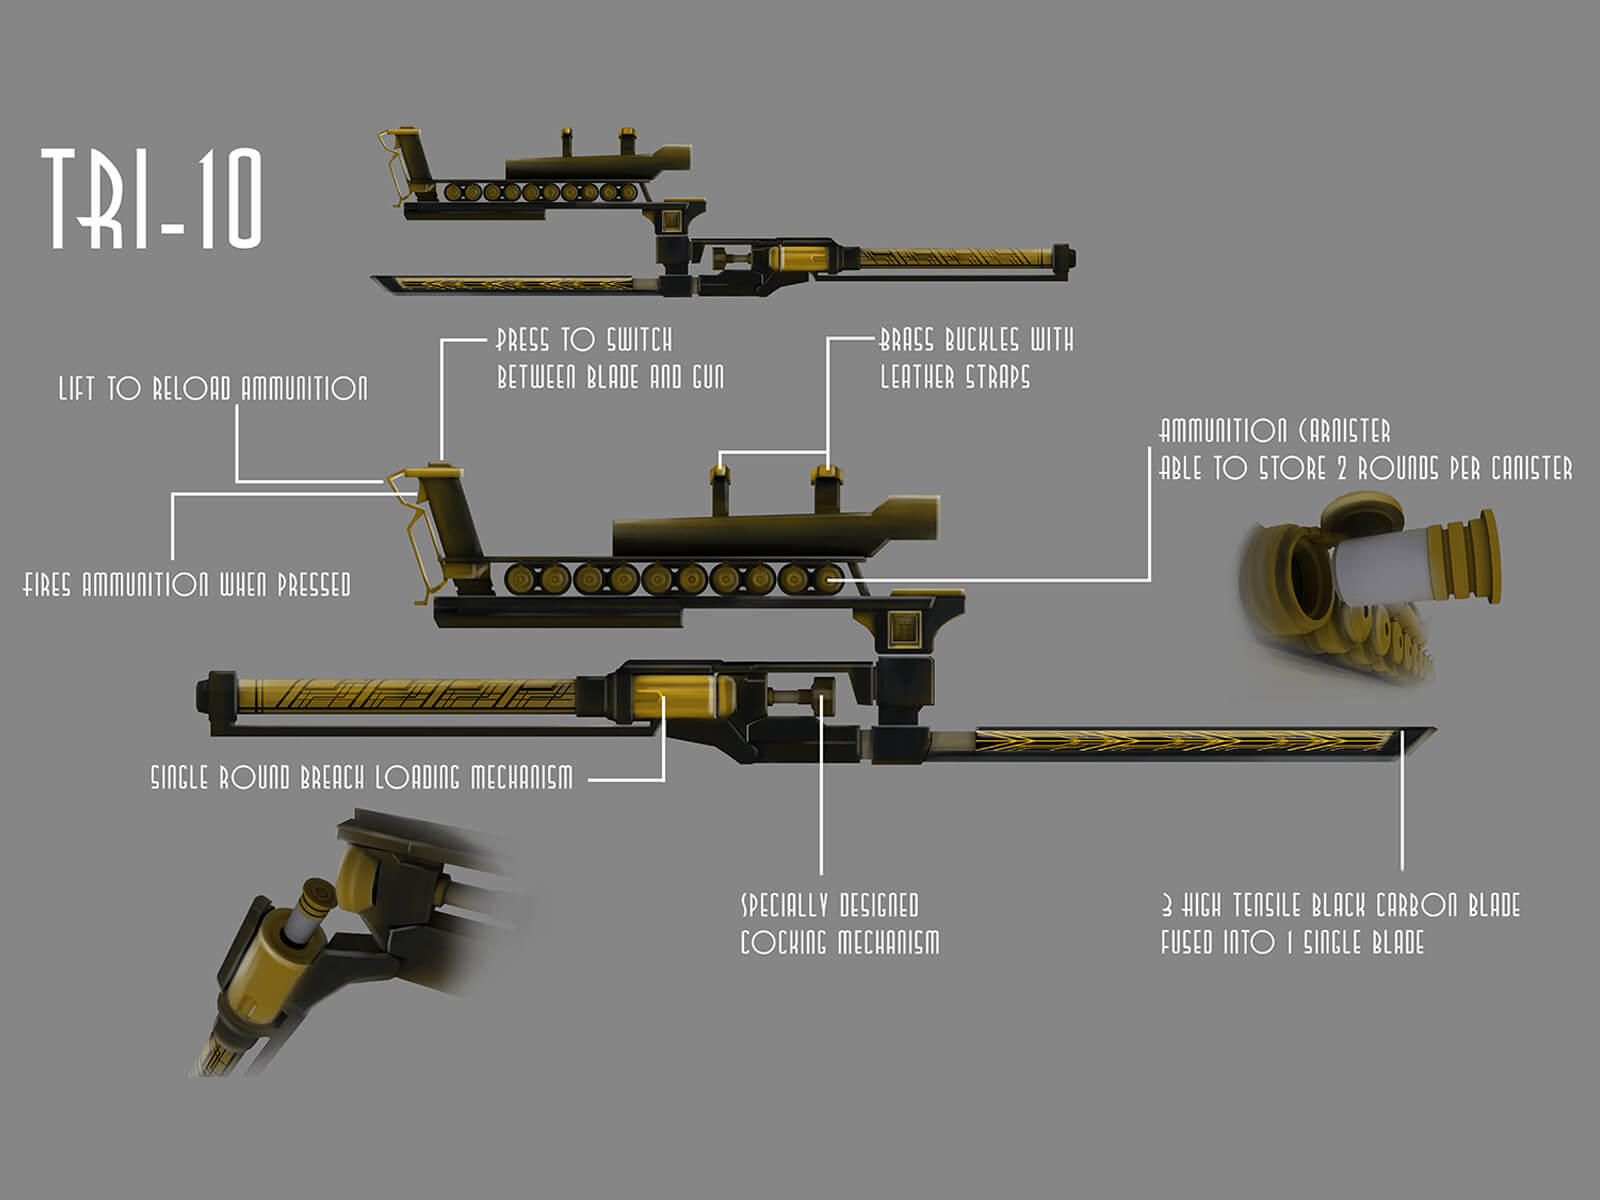 A gold-and-black-adorned, arm-held weapon with a blade, concealed gun barrel, and description of its various ammunition.